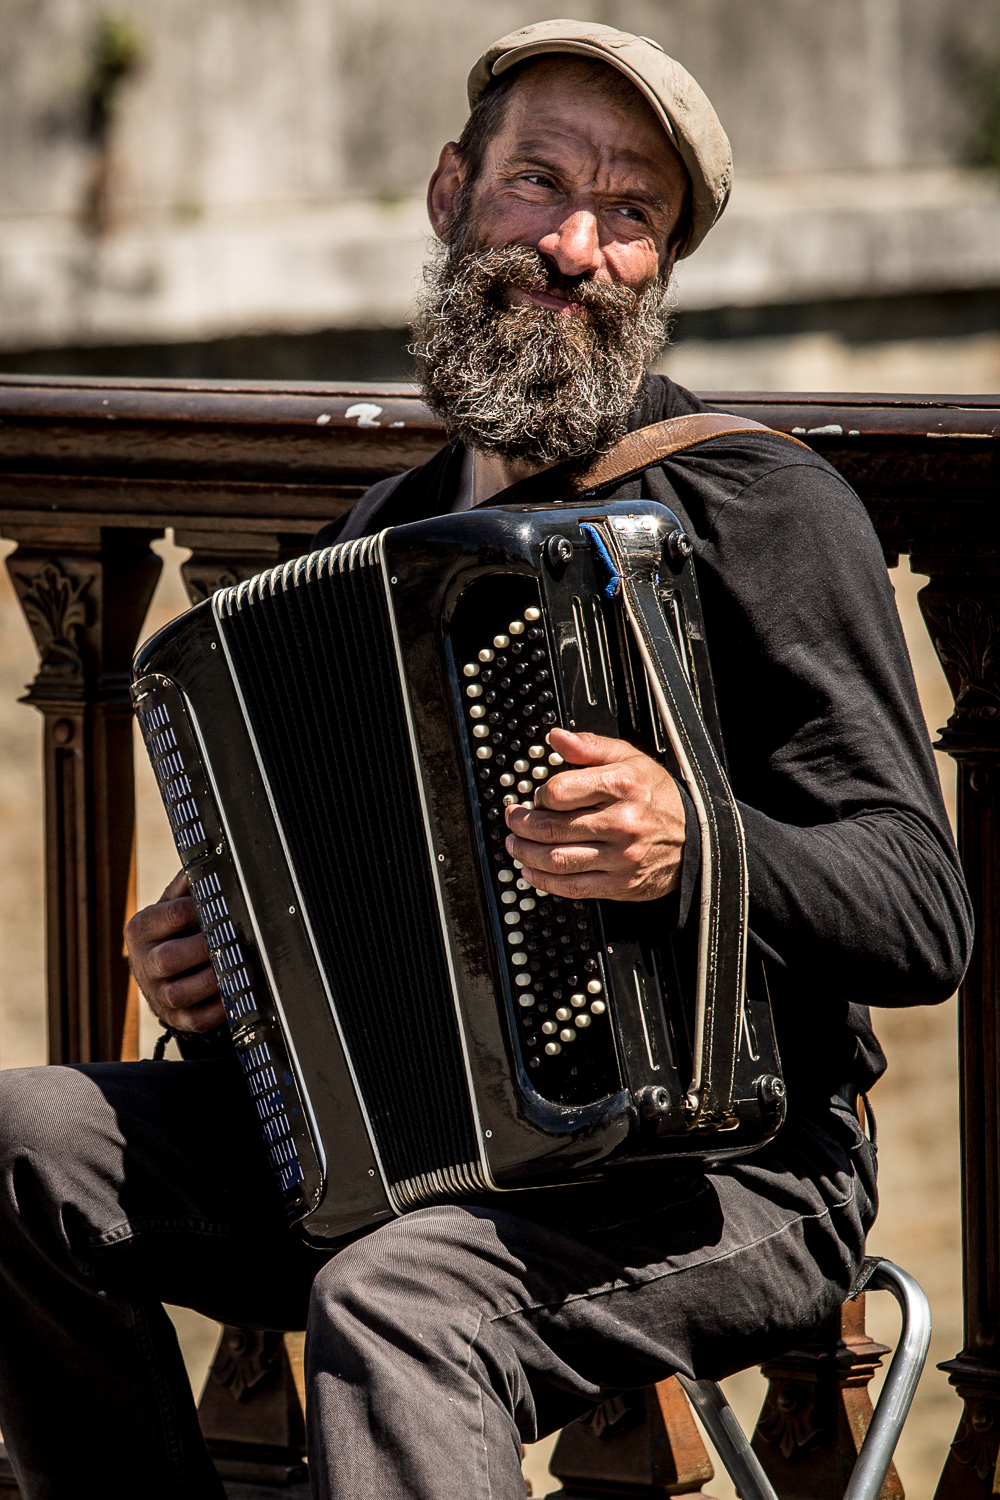 Accordian-Player-Smiling.jpg